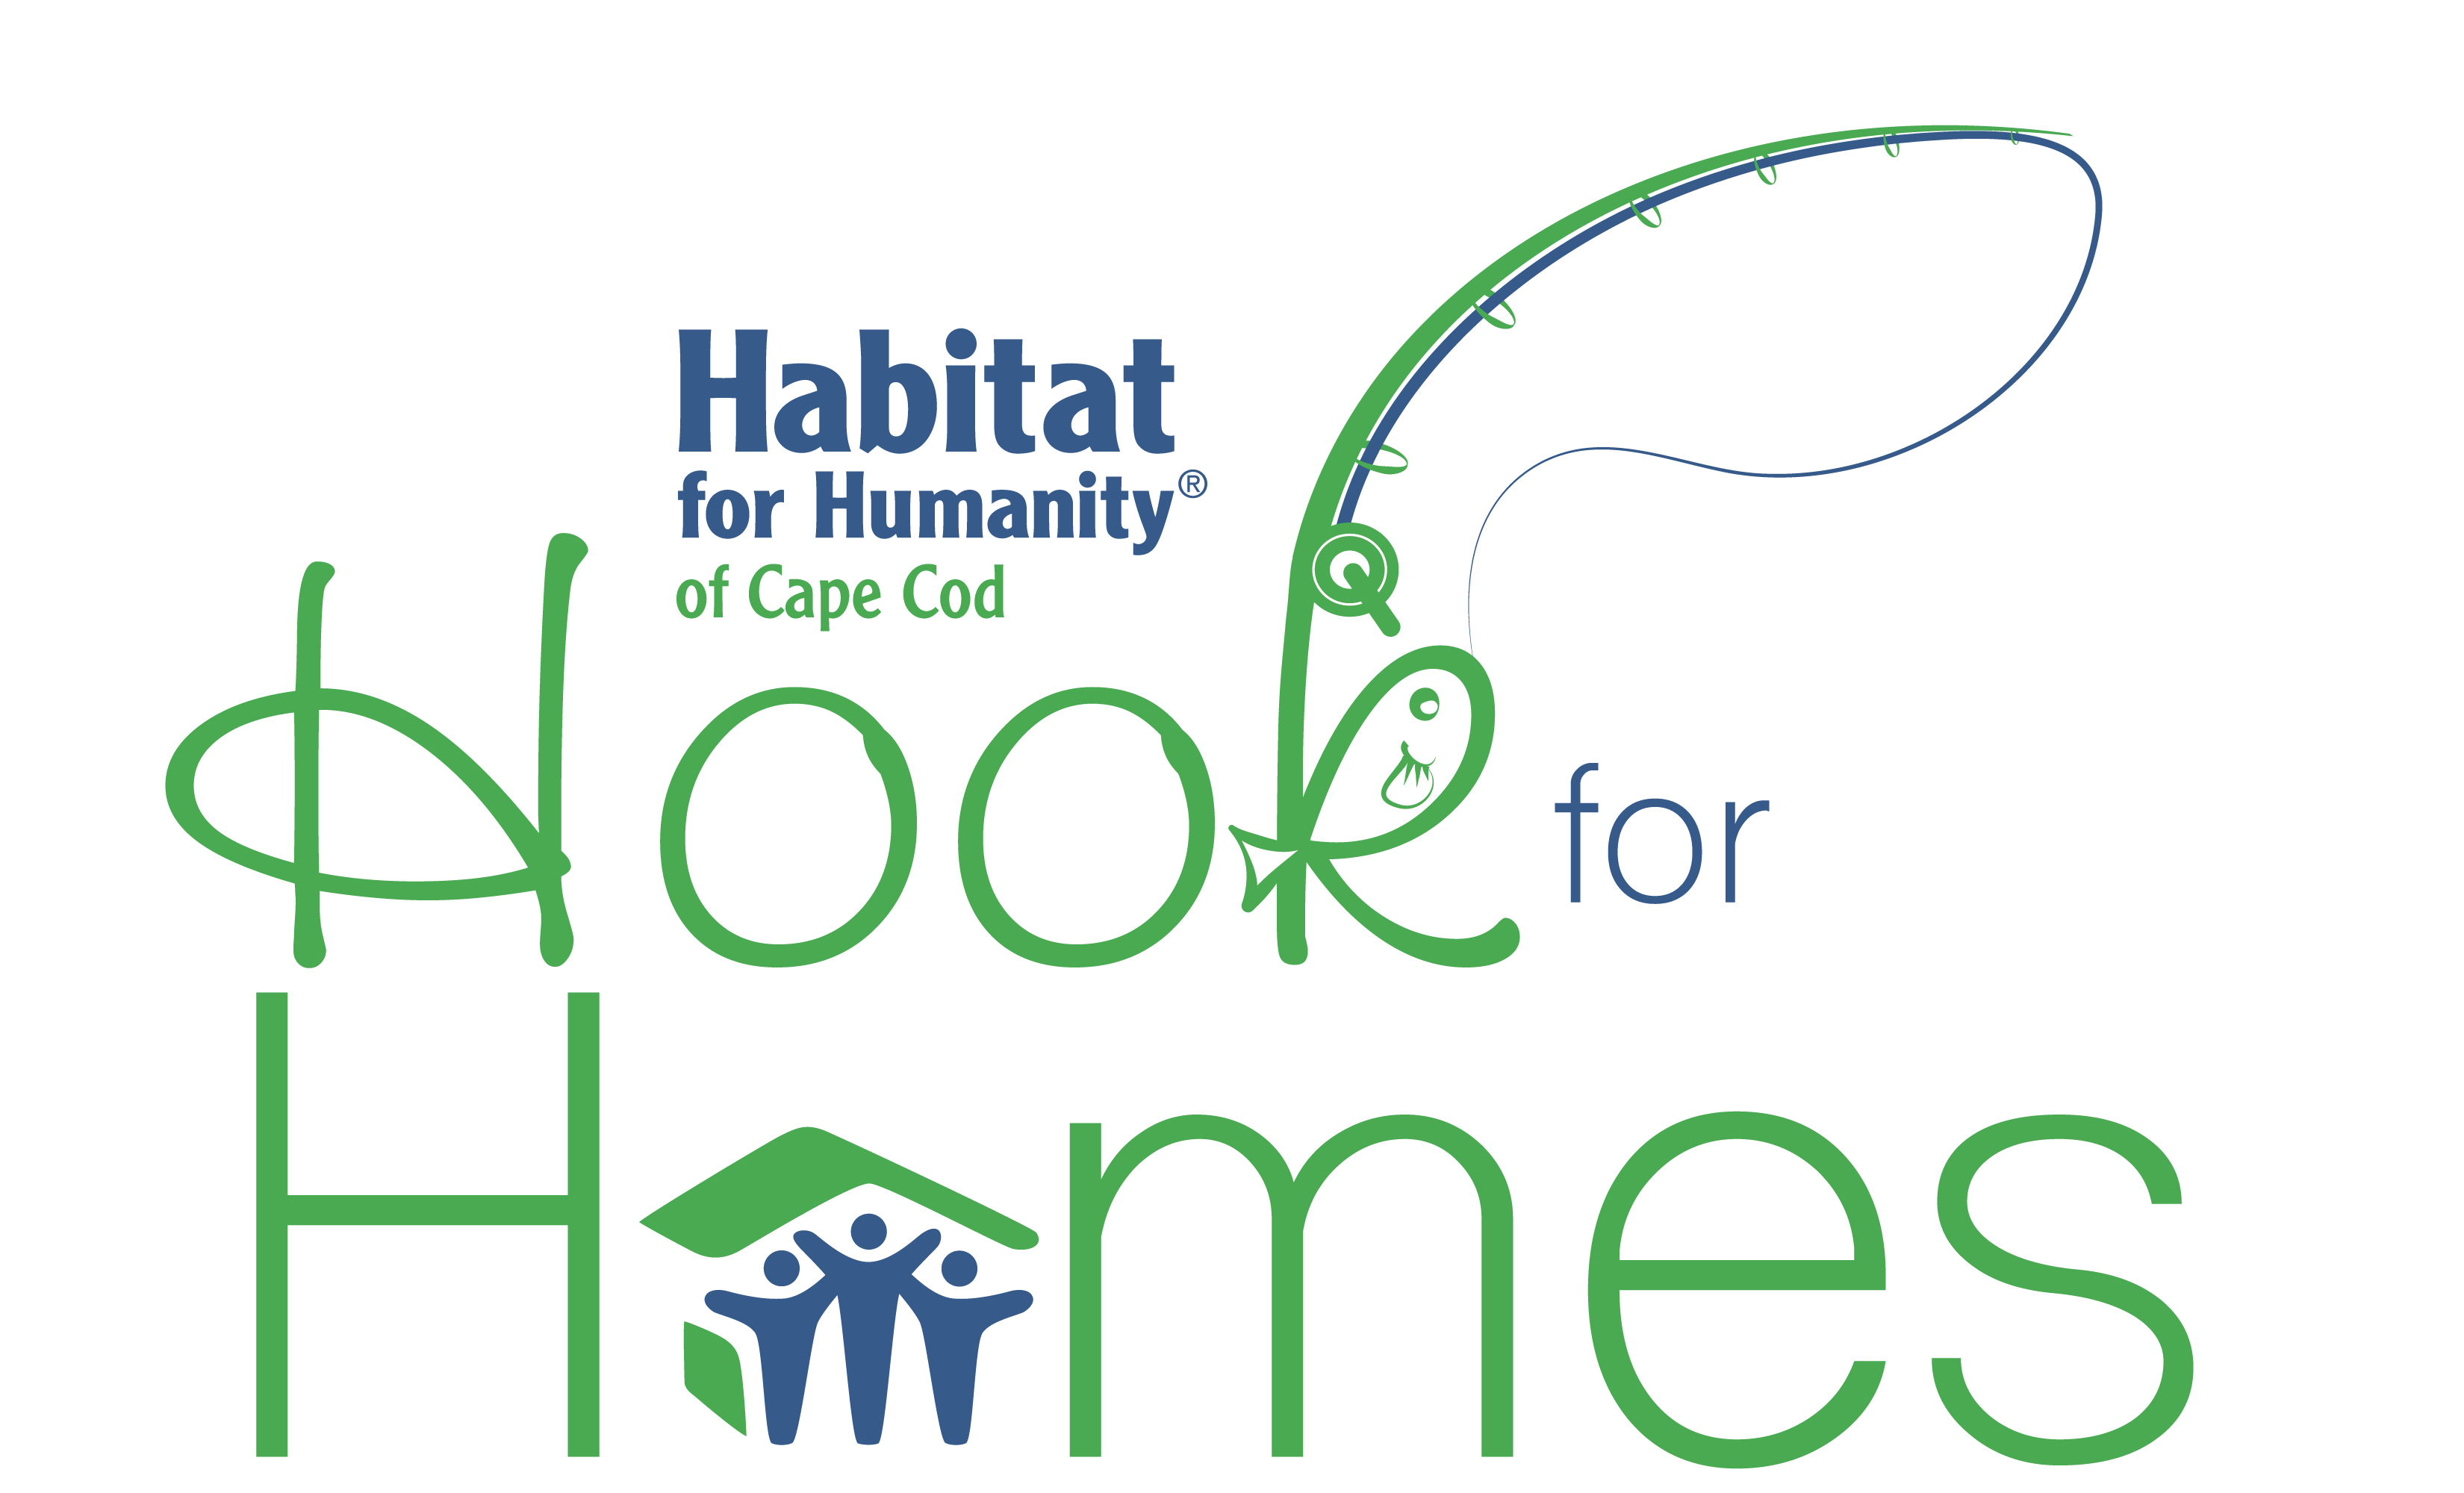 Habitat drawing background. For humanity cape cod